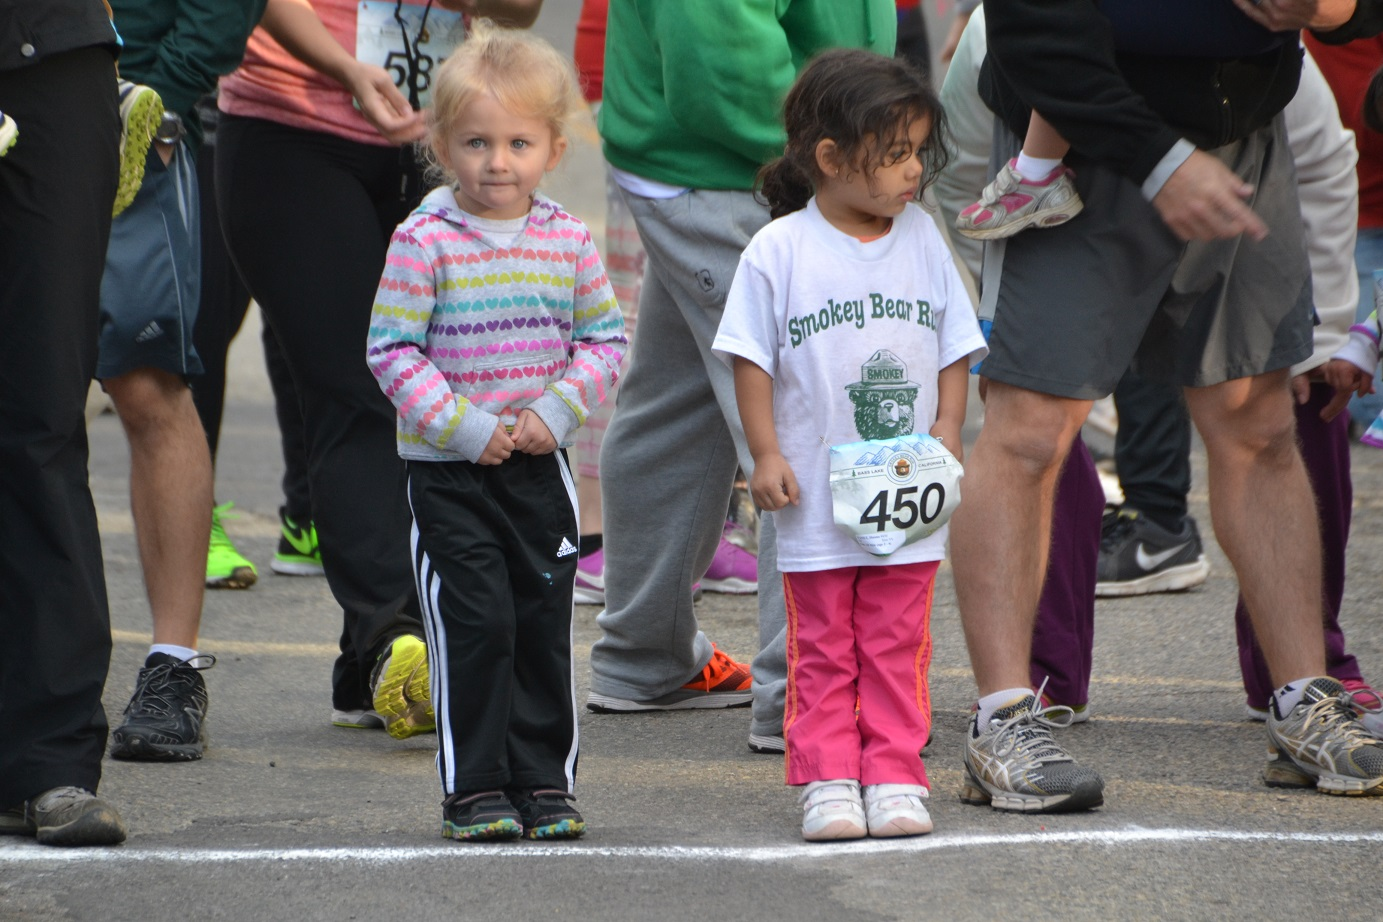 Kids 2-4 years wait at the starting line - photo by Gina Clugston